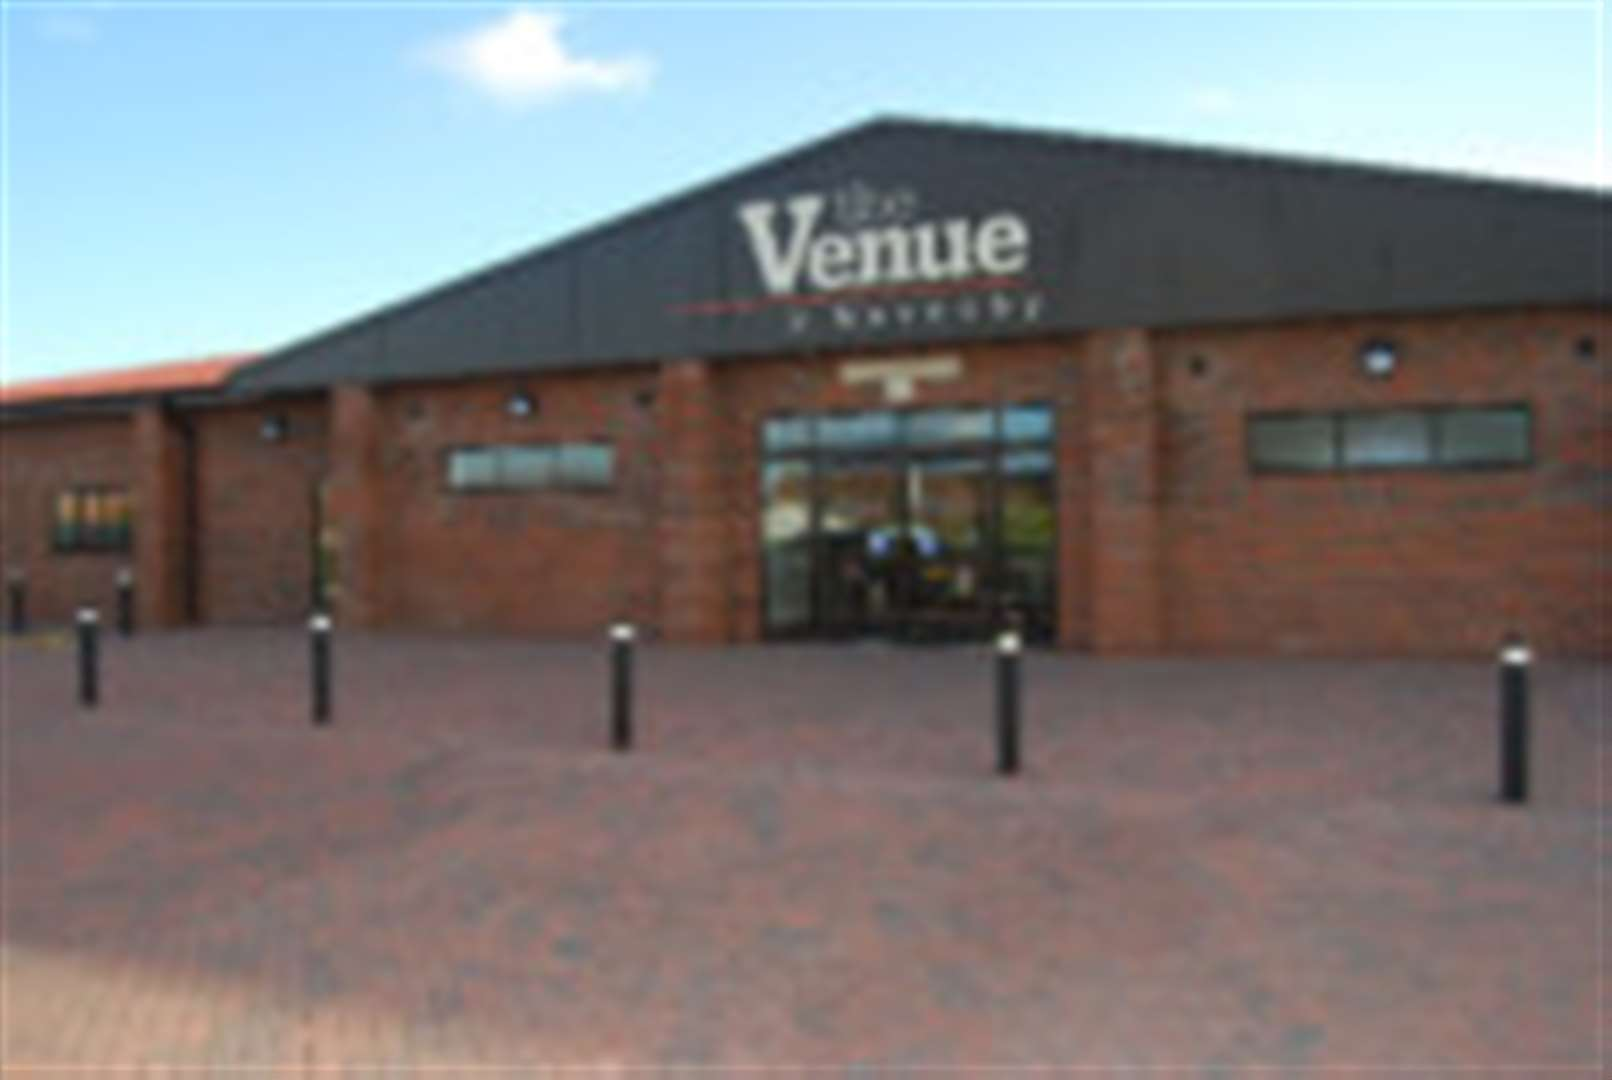 Navenby venue to hold Valentine's dance